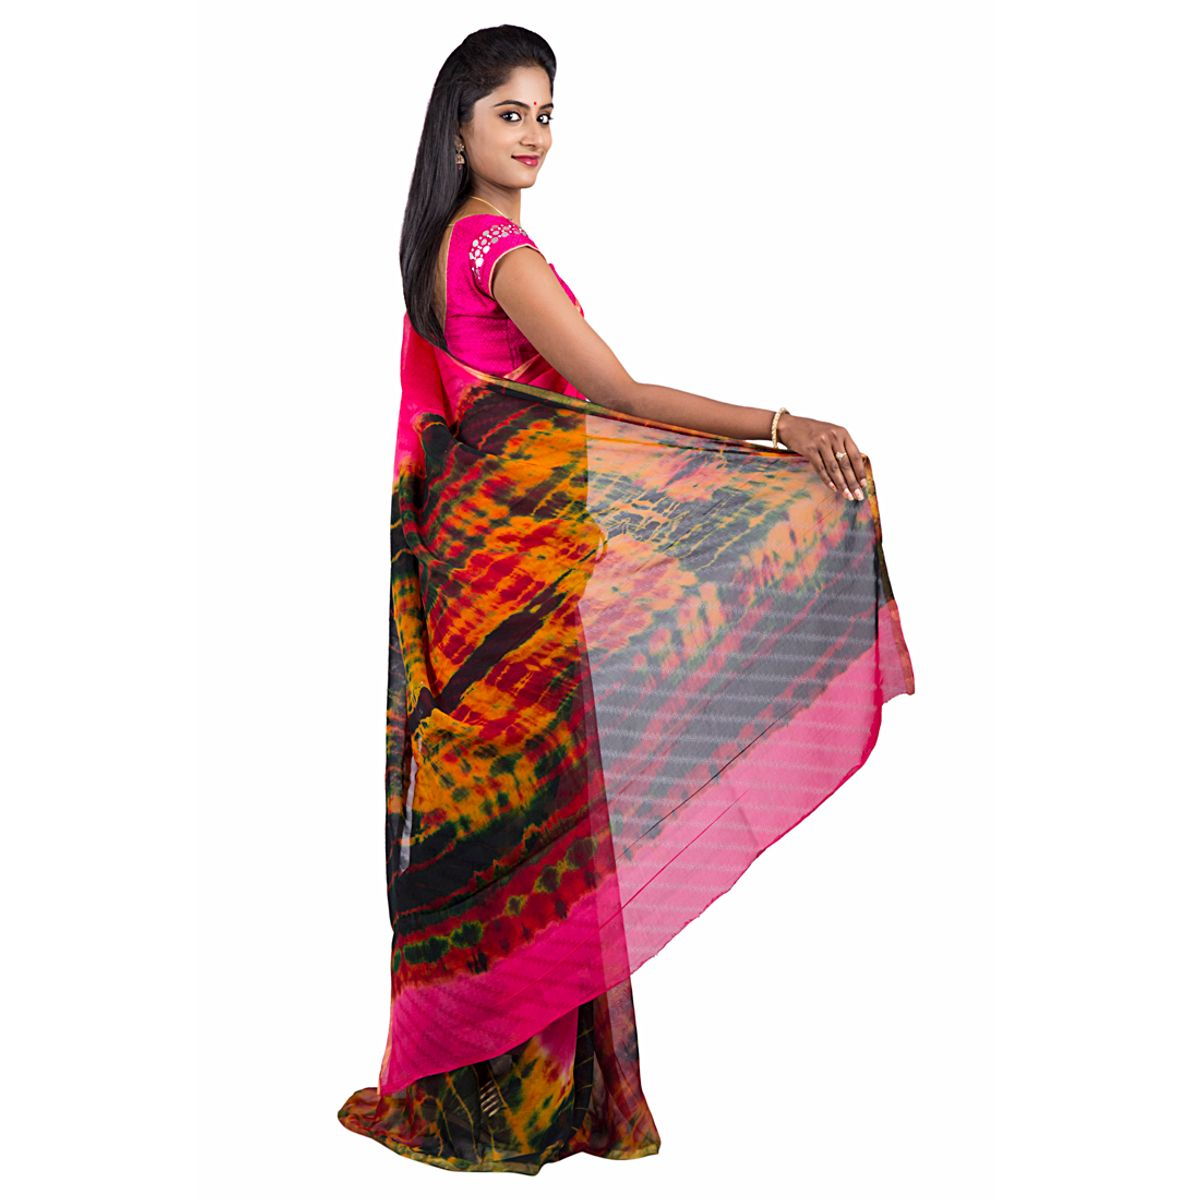 Abhi Silks Embellished Fashion Handloom Pure Georgette Saree  Pink